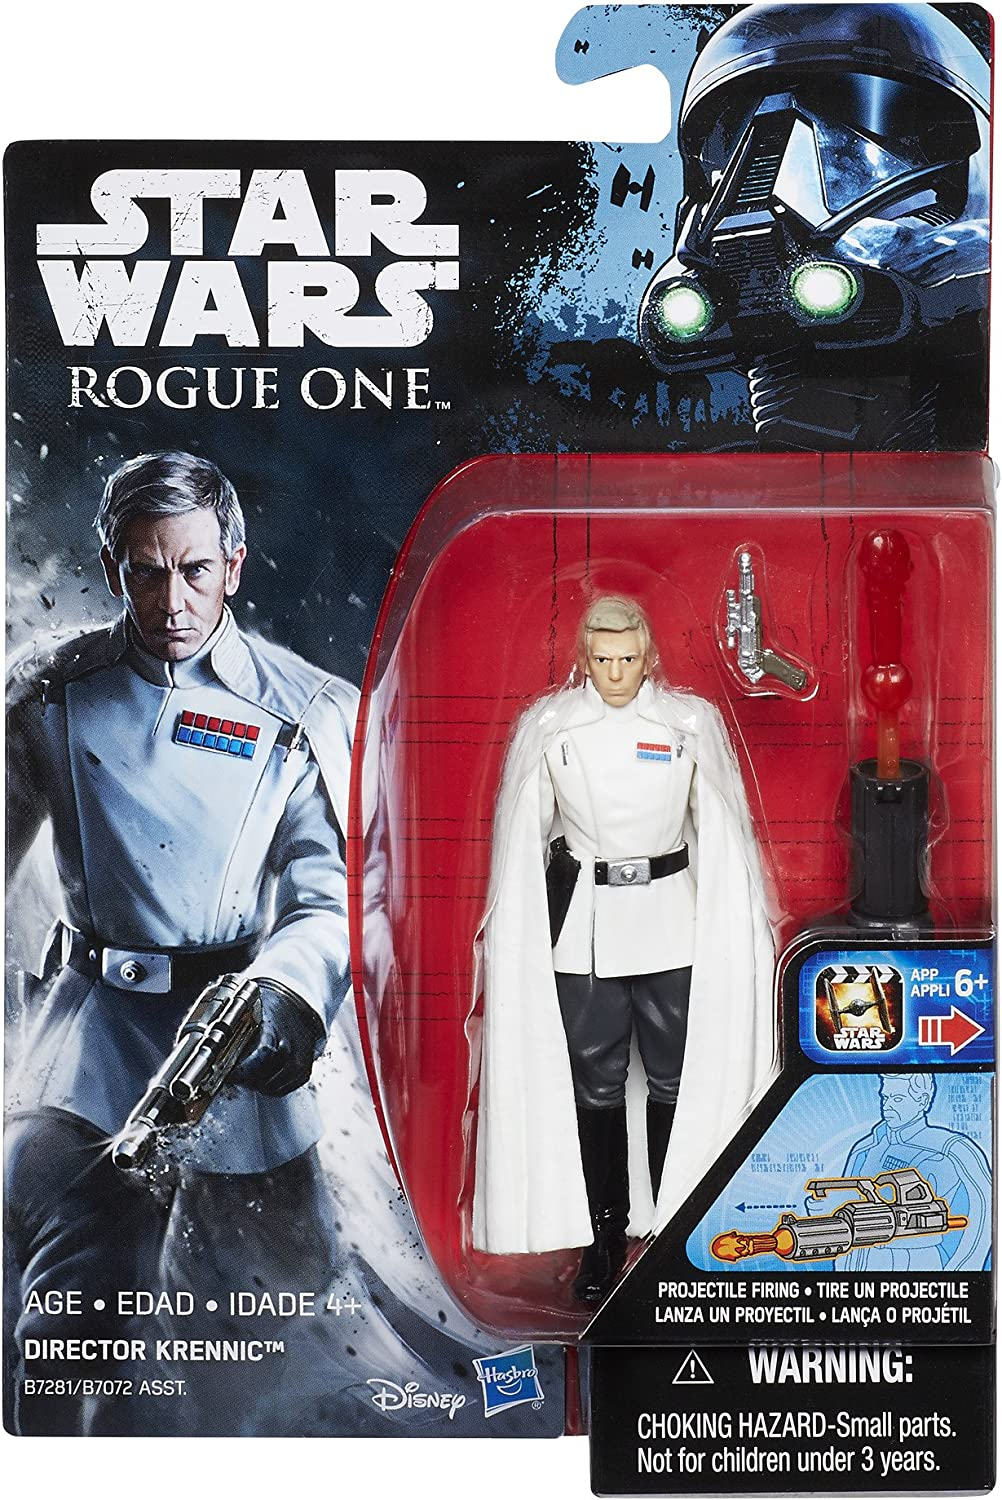 STAR WARS ROGUE ONE DIRECTOR KRENNIC 3 3//4-INCH ACTION FIGURE